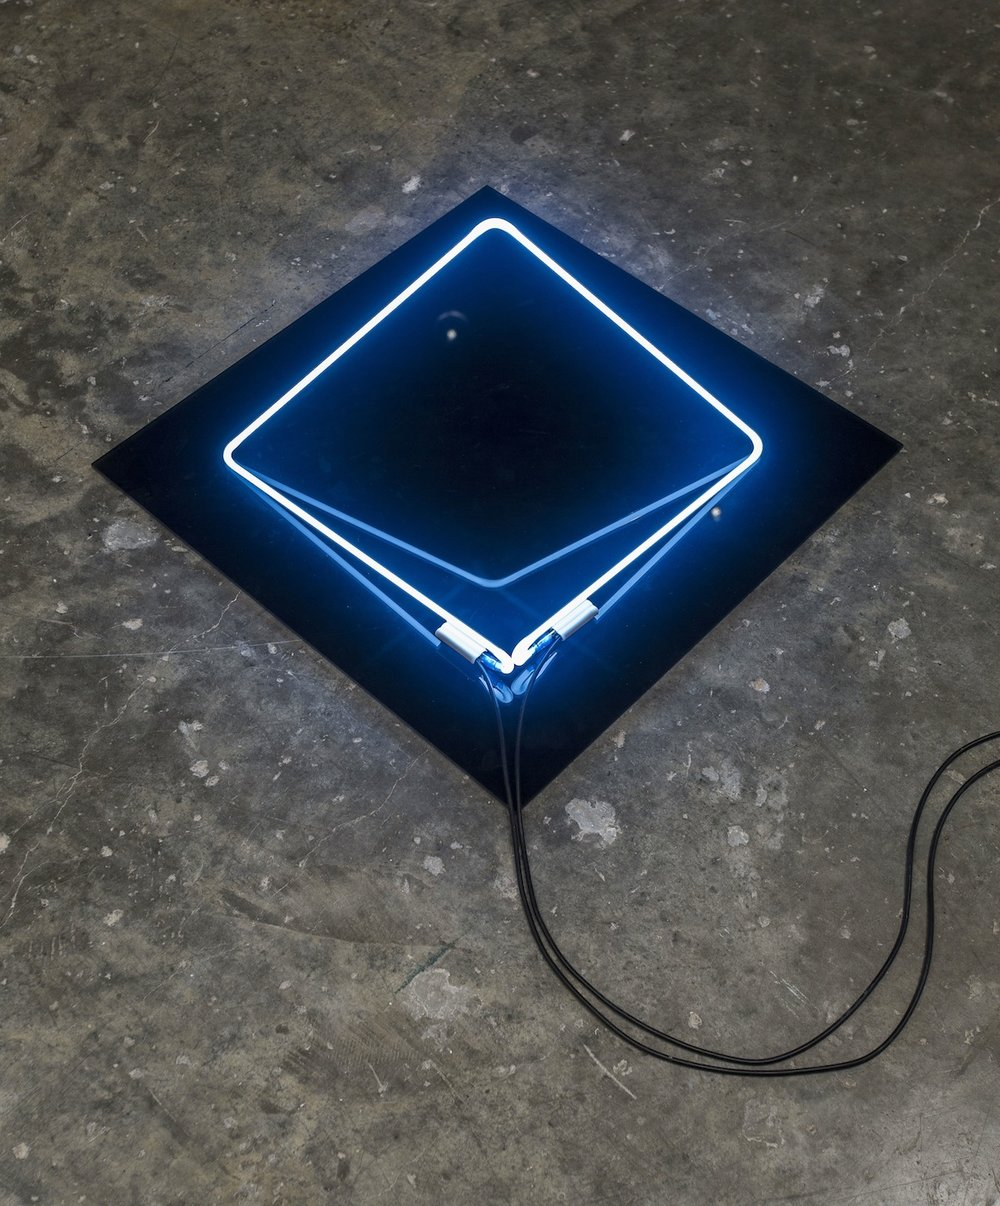 Michael John Whelan  Folded square 2014 White neon, plexi glass and transformer 37 x 37 x 26 cm (neon) and 55 x 55 x 0.5 cm (plexi glass) 2 + 1AP